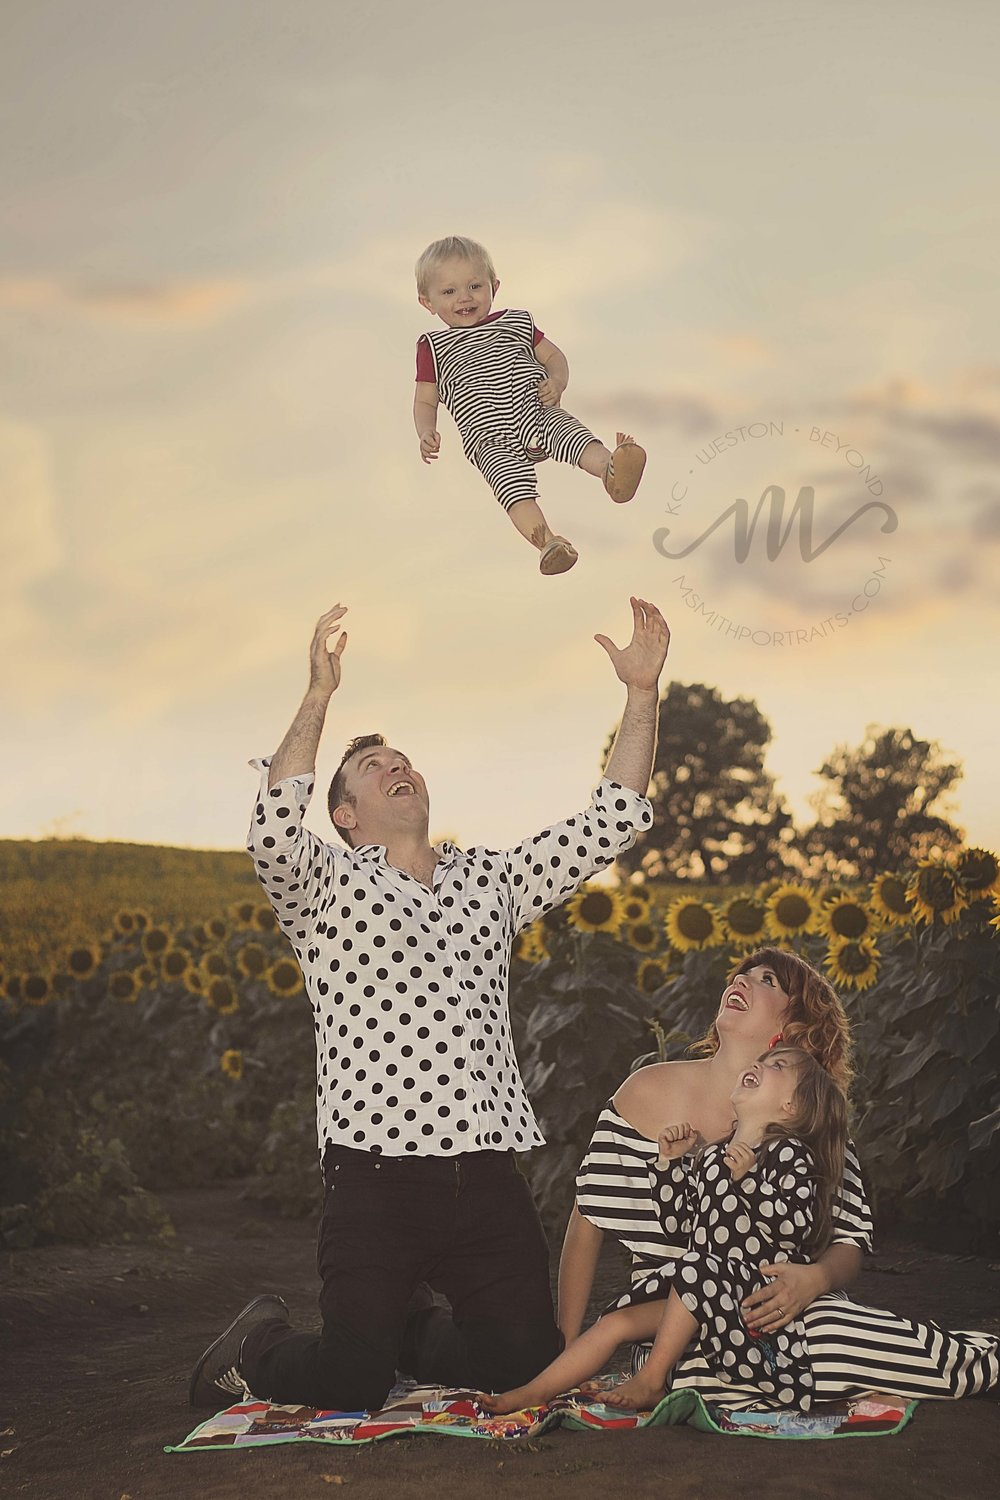 Photo of dad catching baby in sunflower field